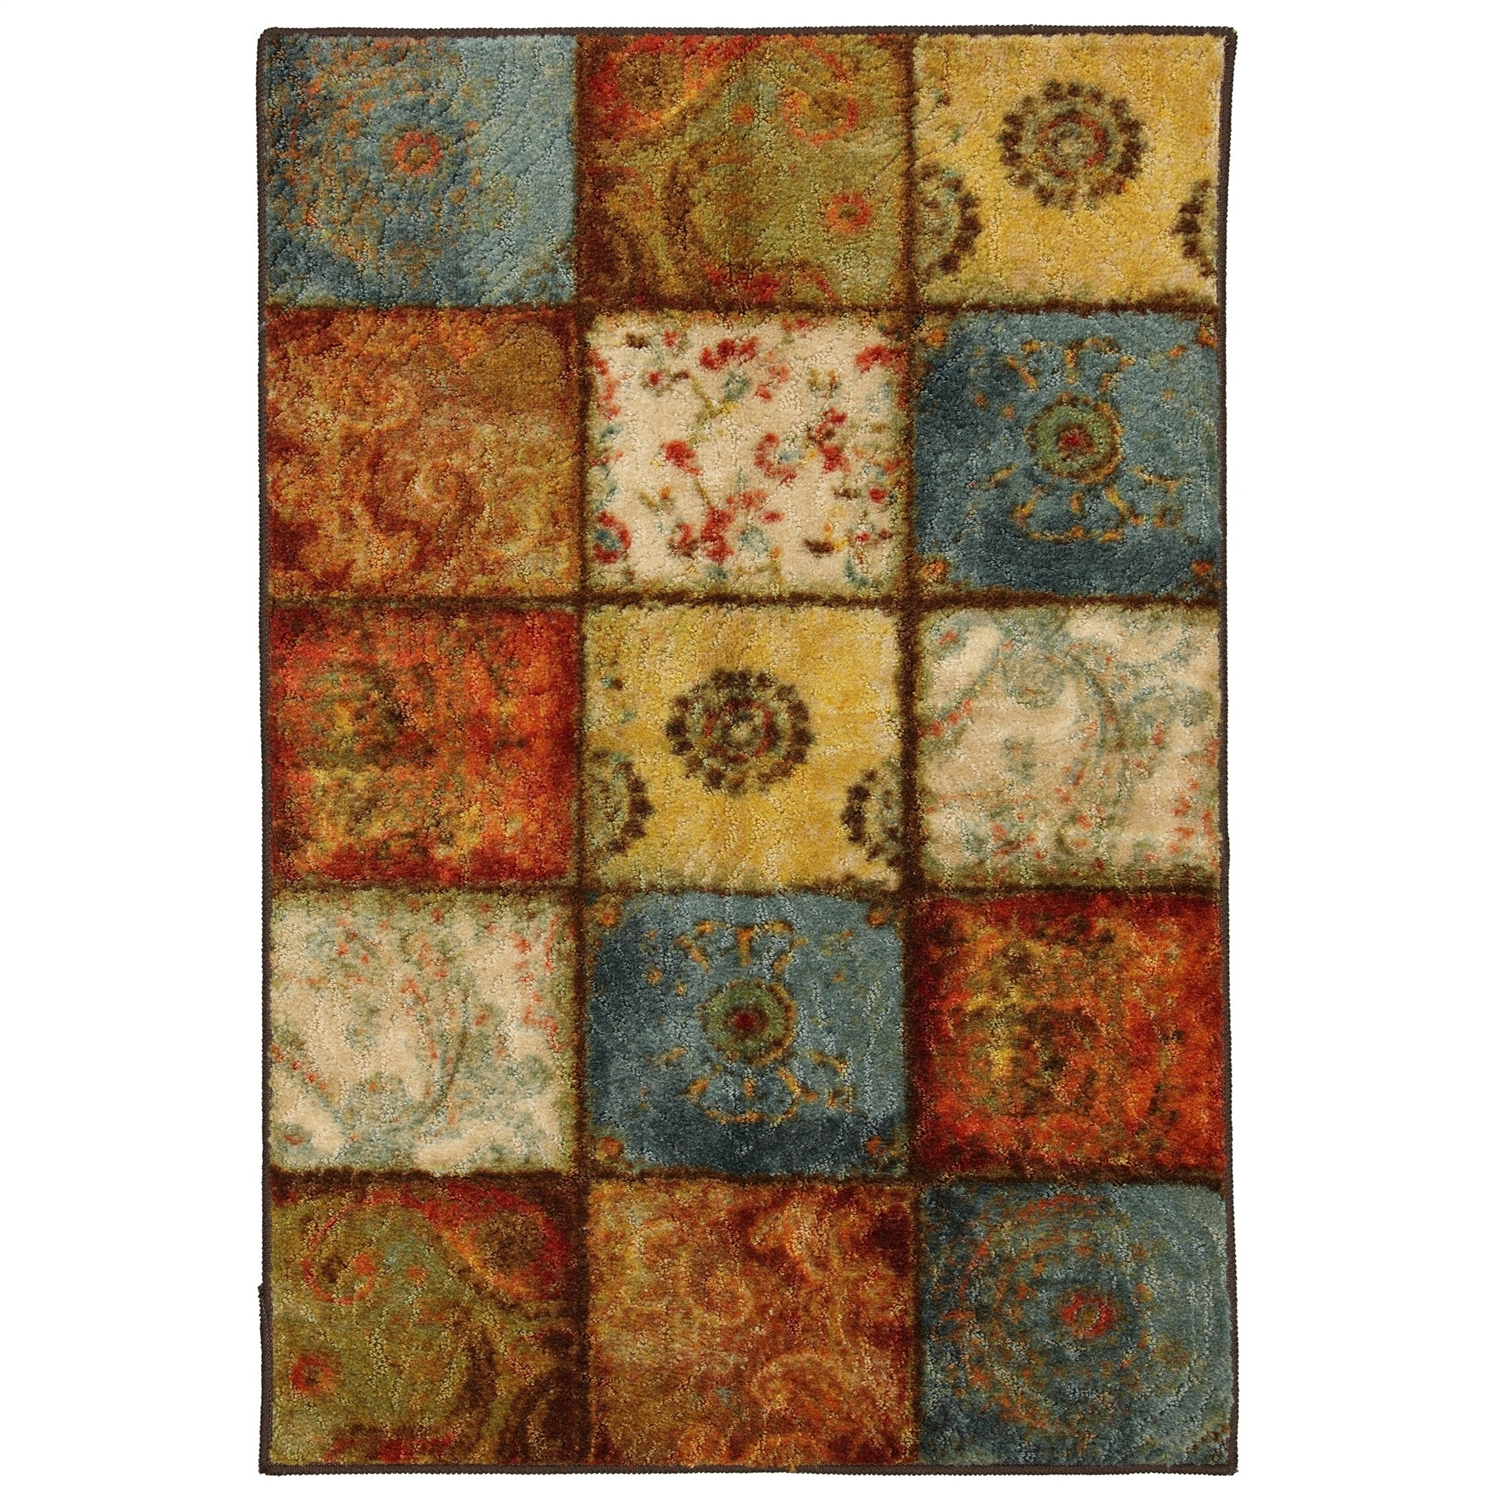 20-in x 34-in Multi-Color Patchwork Pattern Rug - Made in USA, MHAR2356 :  This 20-in x 34-in Multi-Color Patchwork Pattern Rug - Made in USA is a unique blend of traditional and modern designs. Its transitional patchwork pattern and a rich rusty color palette mingle well in any traditional and contemporary set up. This durable and vibrant carpet is ideal for any room in your home. As it can resist mildew and repel water, this rug is suitable for both indoor and outdoor use. This rustic-looking rug is made from nylon for durability and freedom from stains. A machine make gives this rug a consistent design and color. This rug is stain and fade resistant so it looks new for years. Furthermore, a multi-colored serge border surrounding the design gives your rug a neat look. A latex backing prevents the rug from slipping. However, it should be used with a rug pad to avoid damage to your flooring. An extra pad will also increase the lifespan of your rug. You can machine wash this nylon rug in cold water using mild detergent. Don't forget to tumble dry it on low setting. Even non-chlorine bleach can be used while washing this rug. This rug is made in the USA. It is CRI certified and has a 1 year warranty against all manufacturing defects. Available in different sizes, you can pick this rug as per your styling requirements. Product Care: Machine wash separately in cold water using mild detergent. Use non-chlorine bleach when needed. Tumble dry on low setting.